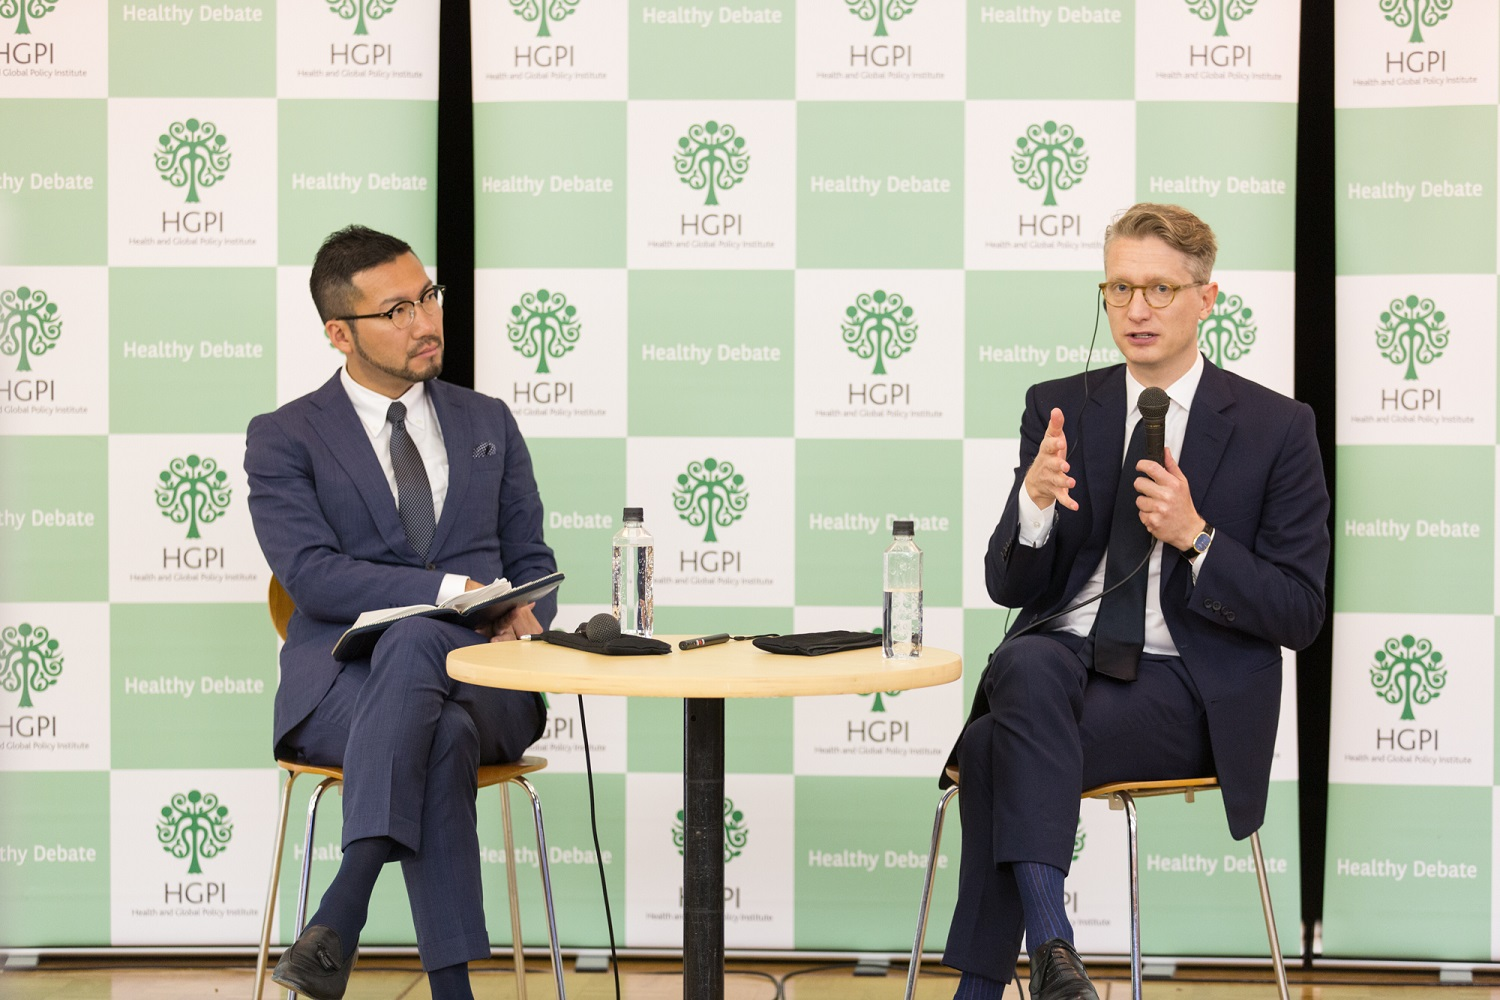 [Event report] Special discussion forum: Wisdom and philosophy for interpreting modern society by examining the intersection of culture, countries, individuals, and ideologies (May 28, 2019)